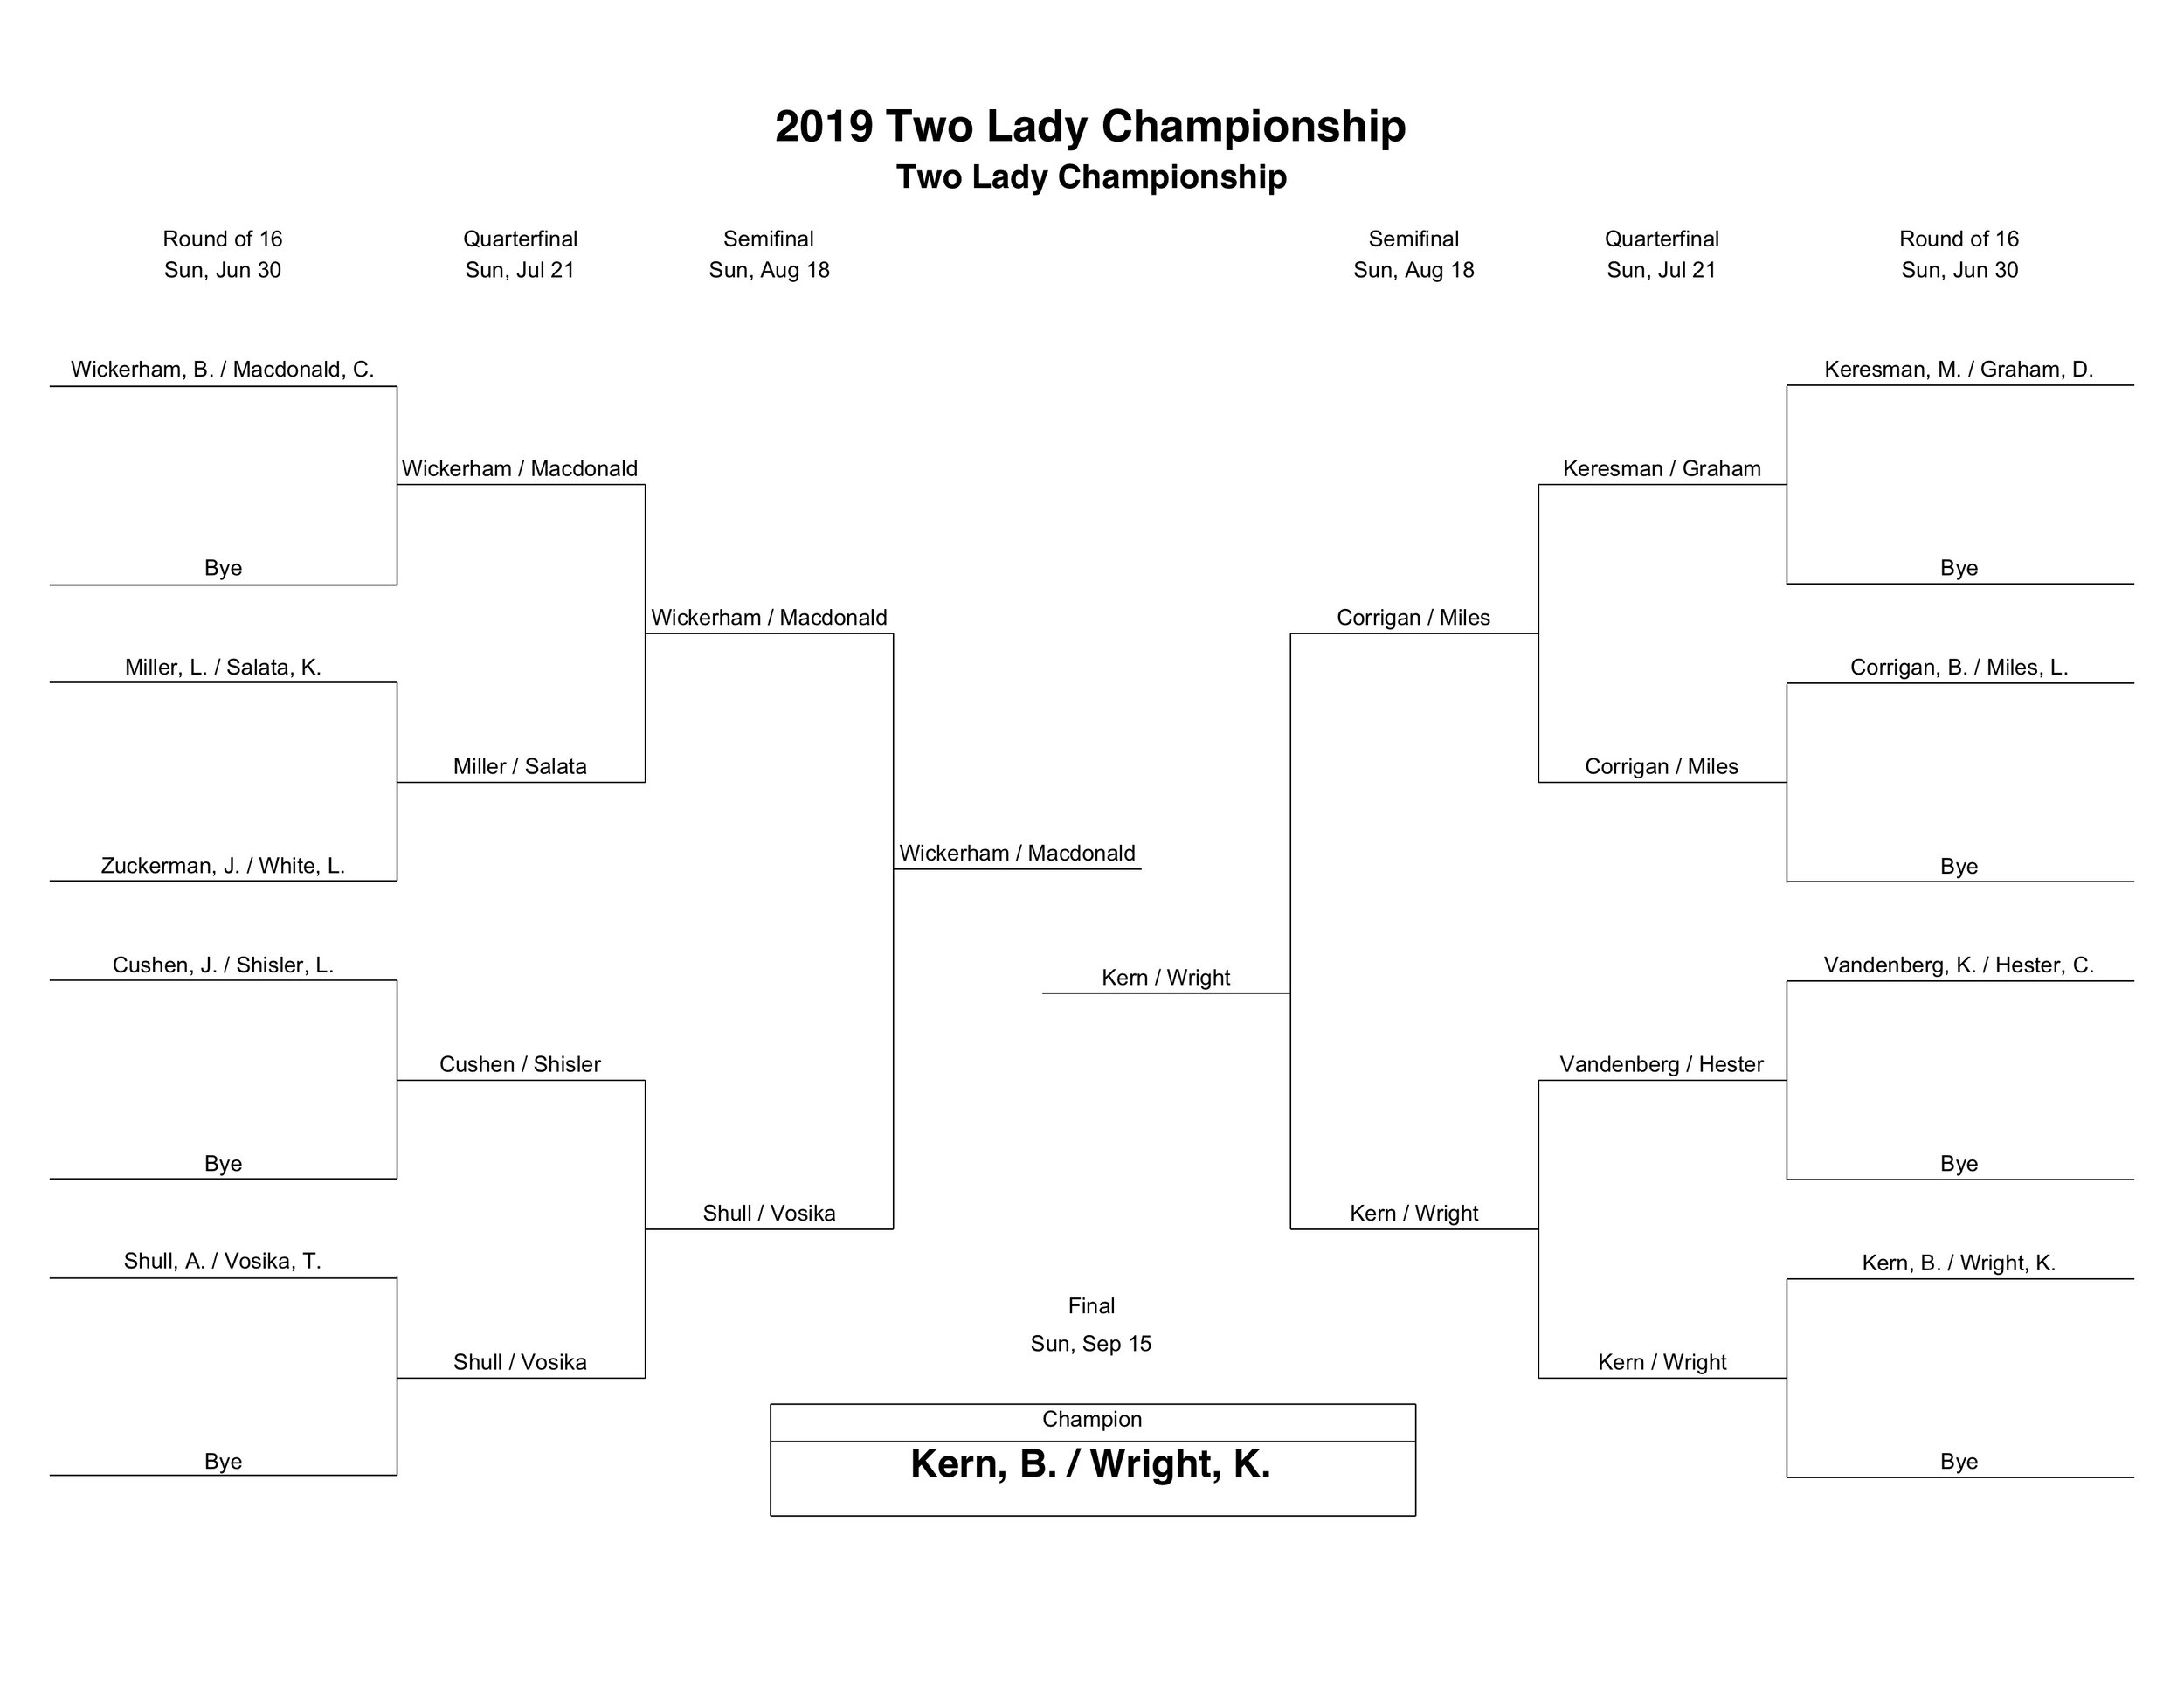 2019 two lady championship complete.jpg